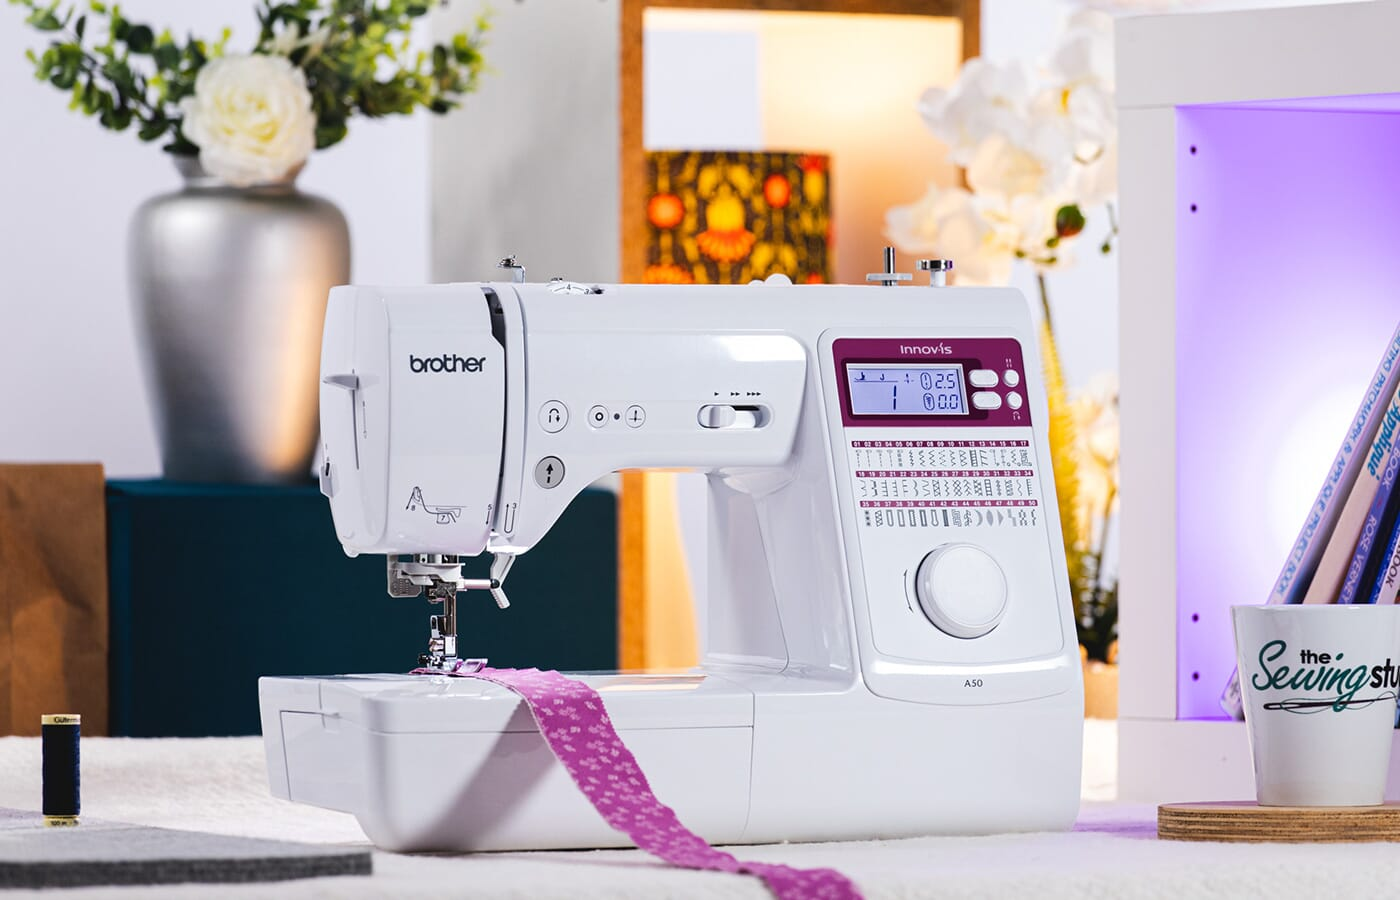 Brother Innov-is A50 Sewing Machine in a Sewing Room